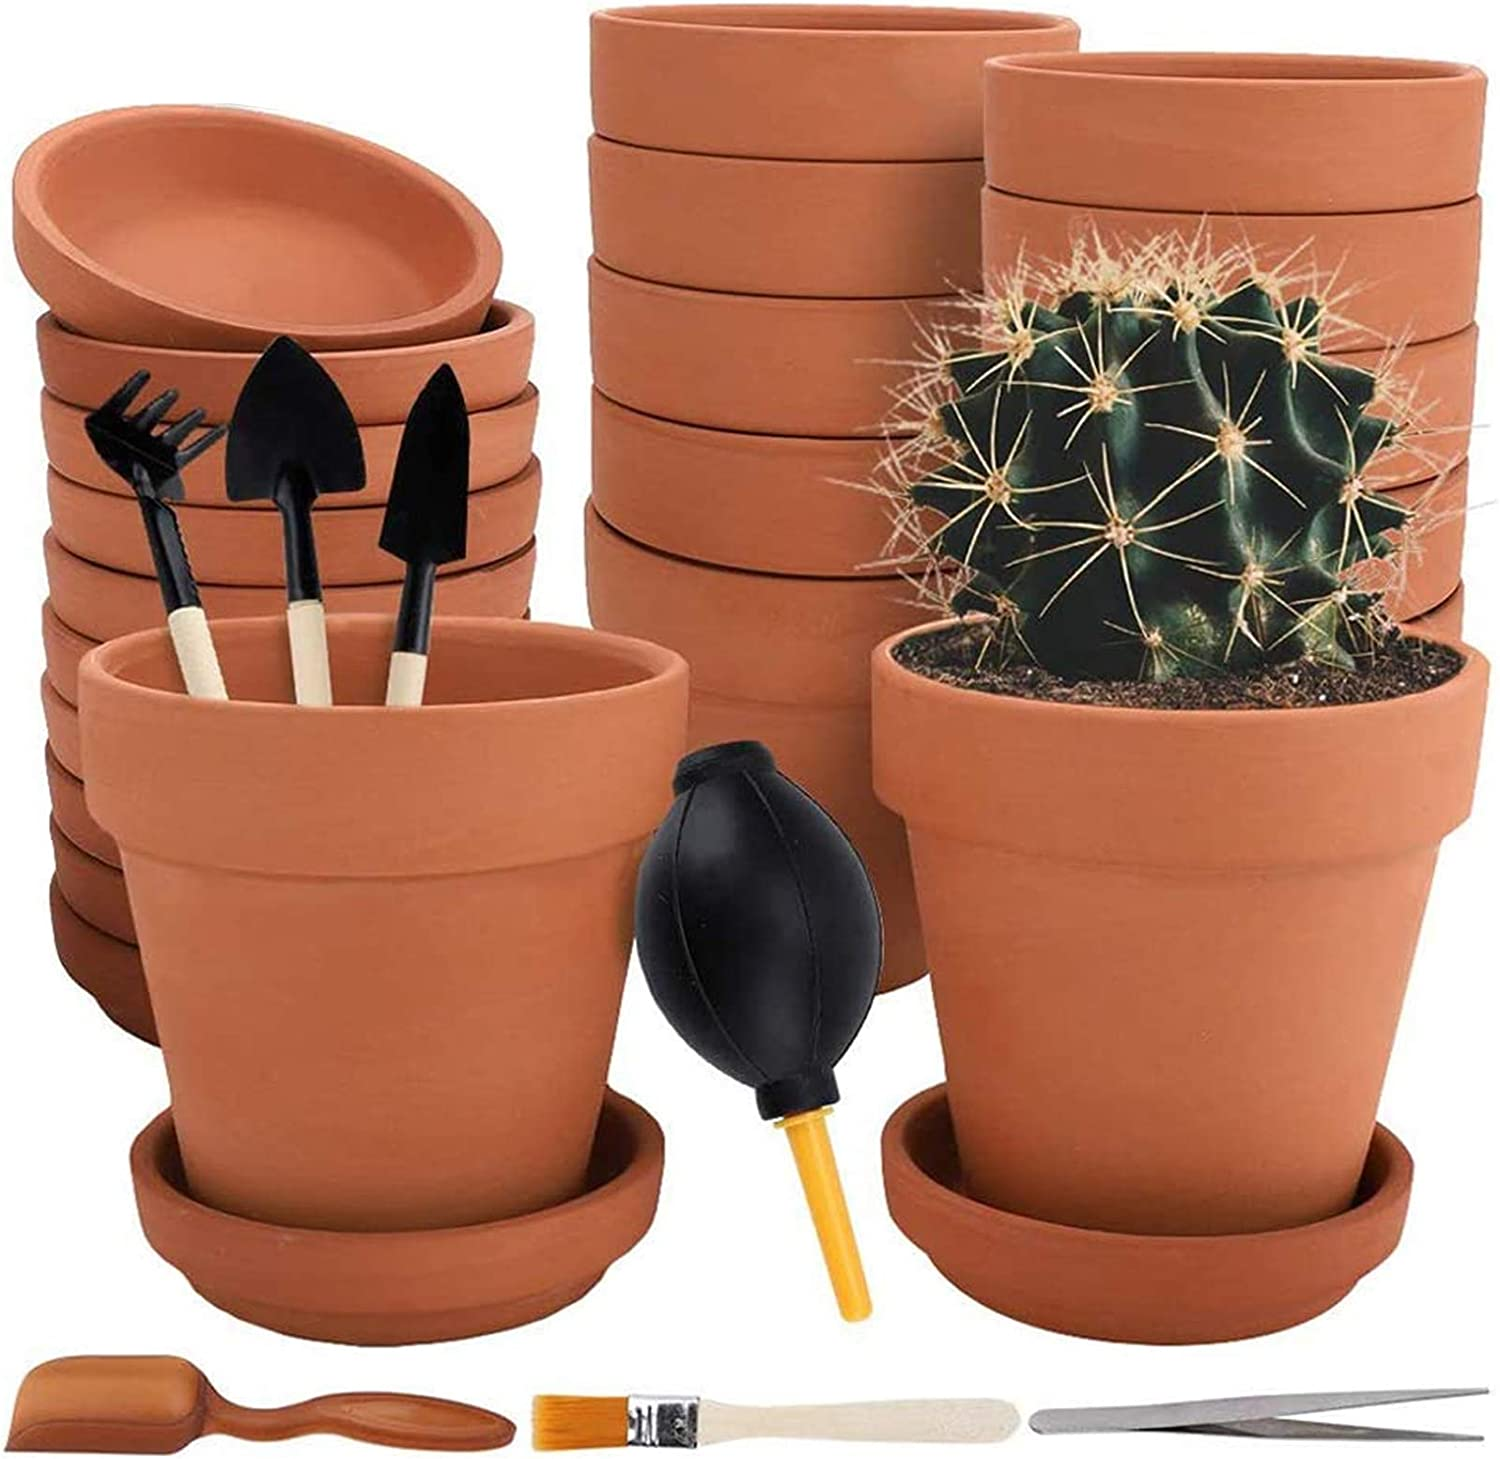 Nilos 12 Pack Terra Cotta Pots with Saucer - 12Pcs 3 inches Clay Pots with 7Pcs Succulent Tools Mini Flower Pot Planters for Succulent Display, Indoor, Outdoor